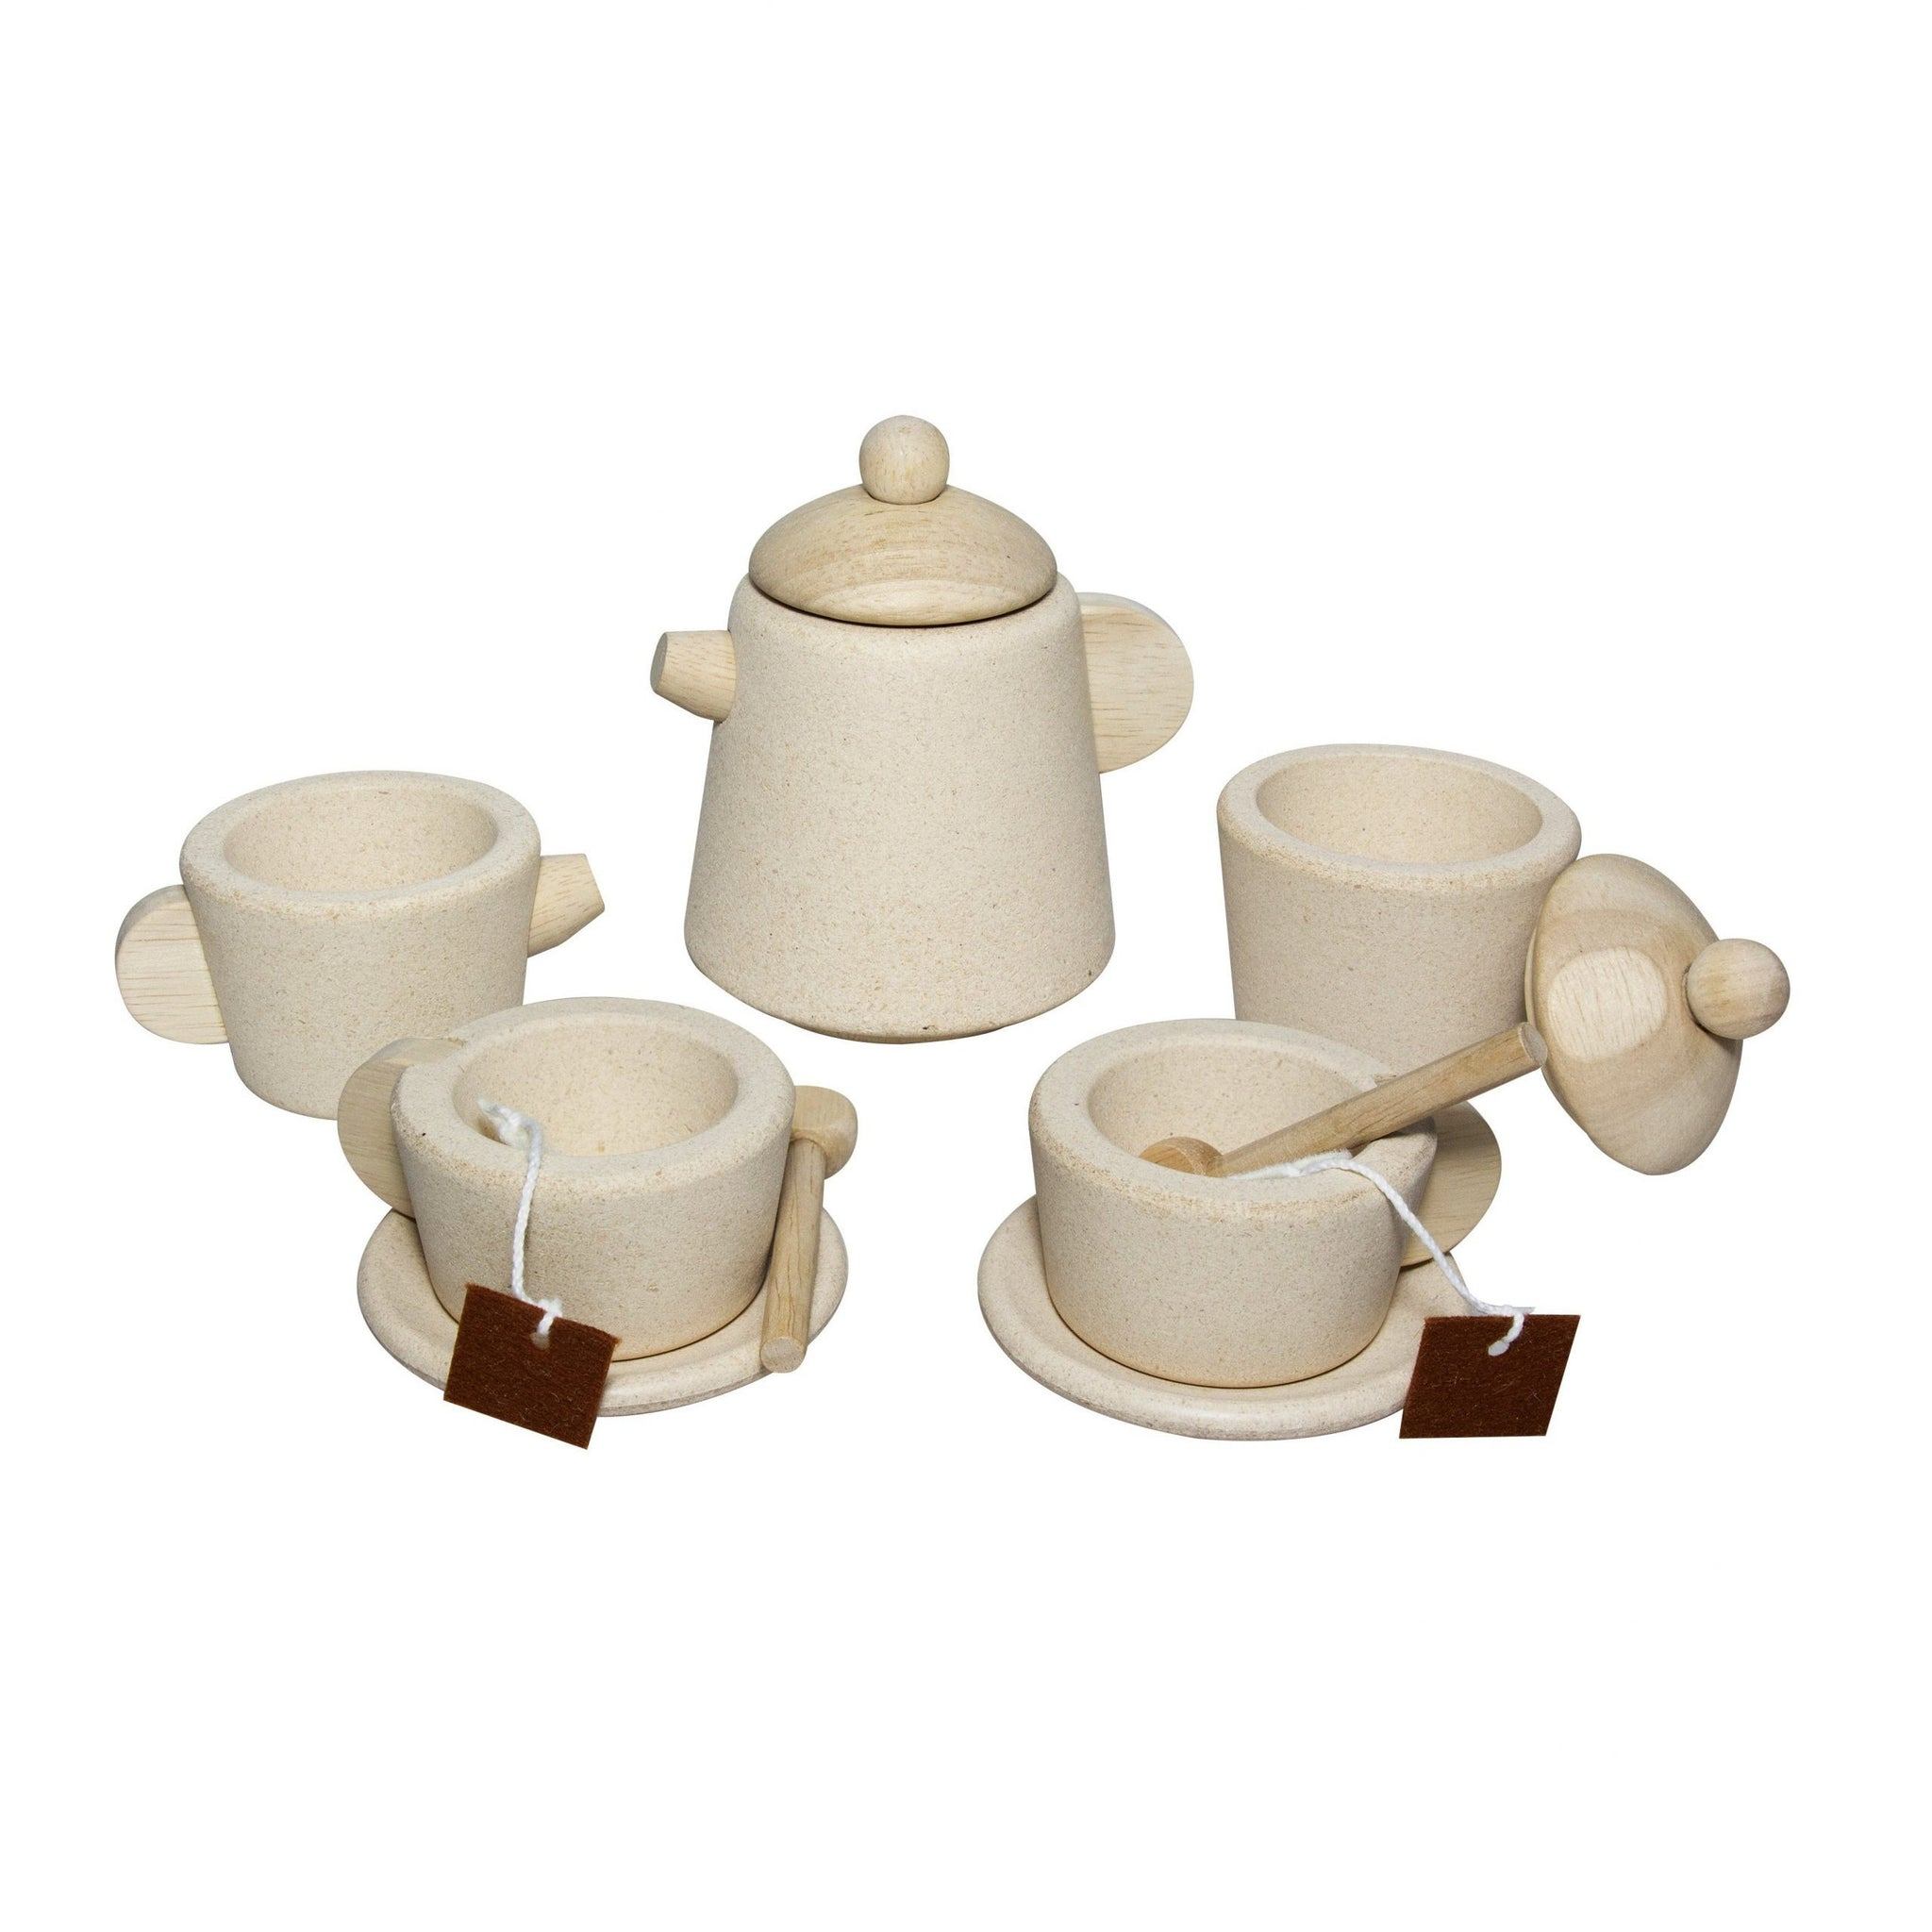 Plan Toys Natural Tea Set PlanToys Toy Kitchens & Play Food at Little Earth Nest Eco Shop